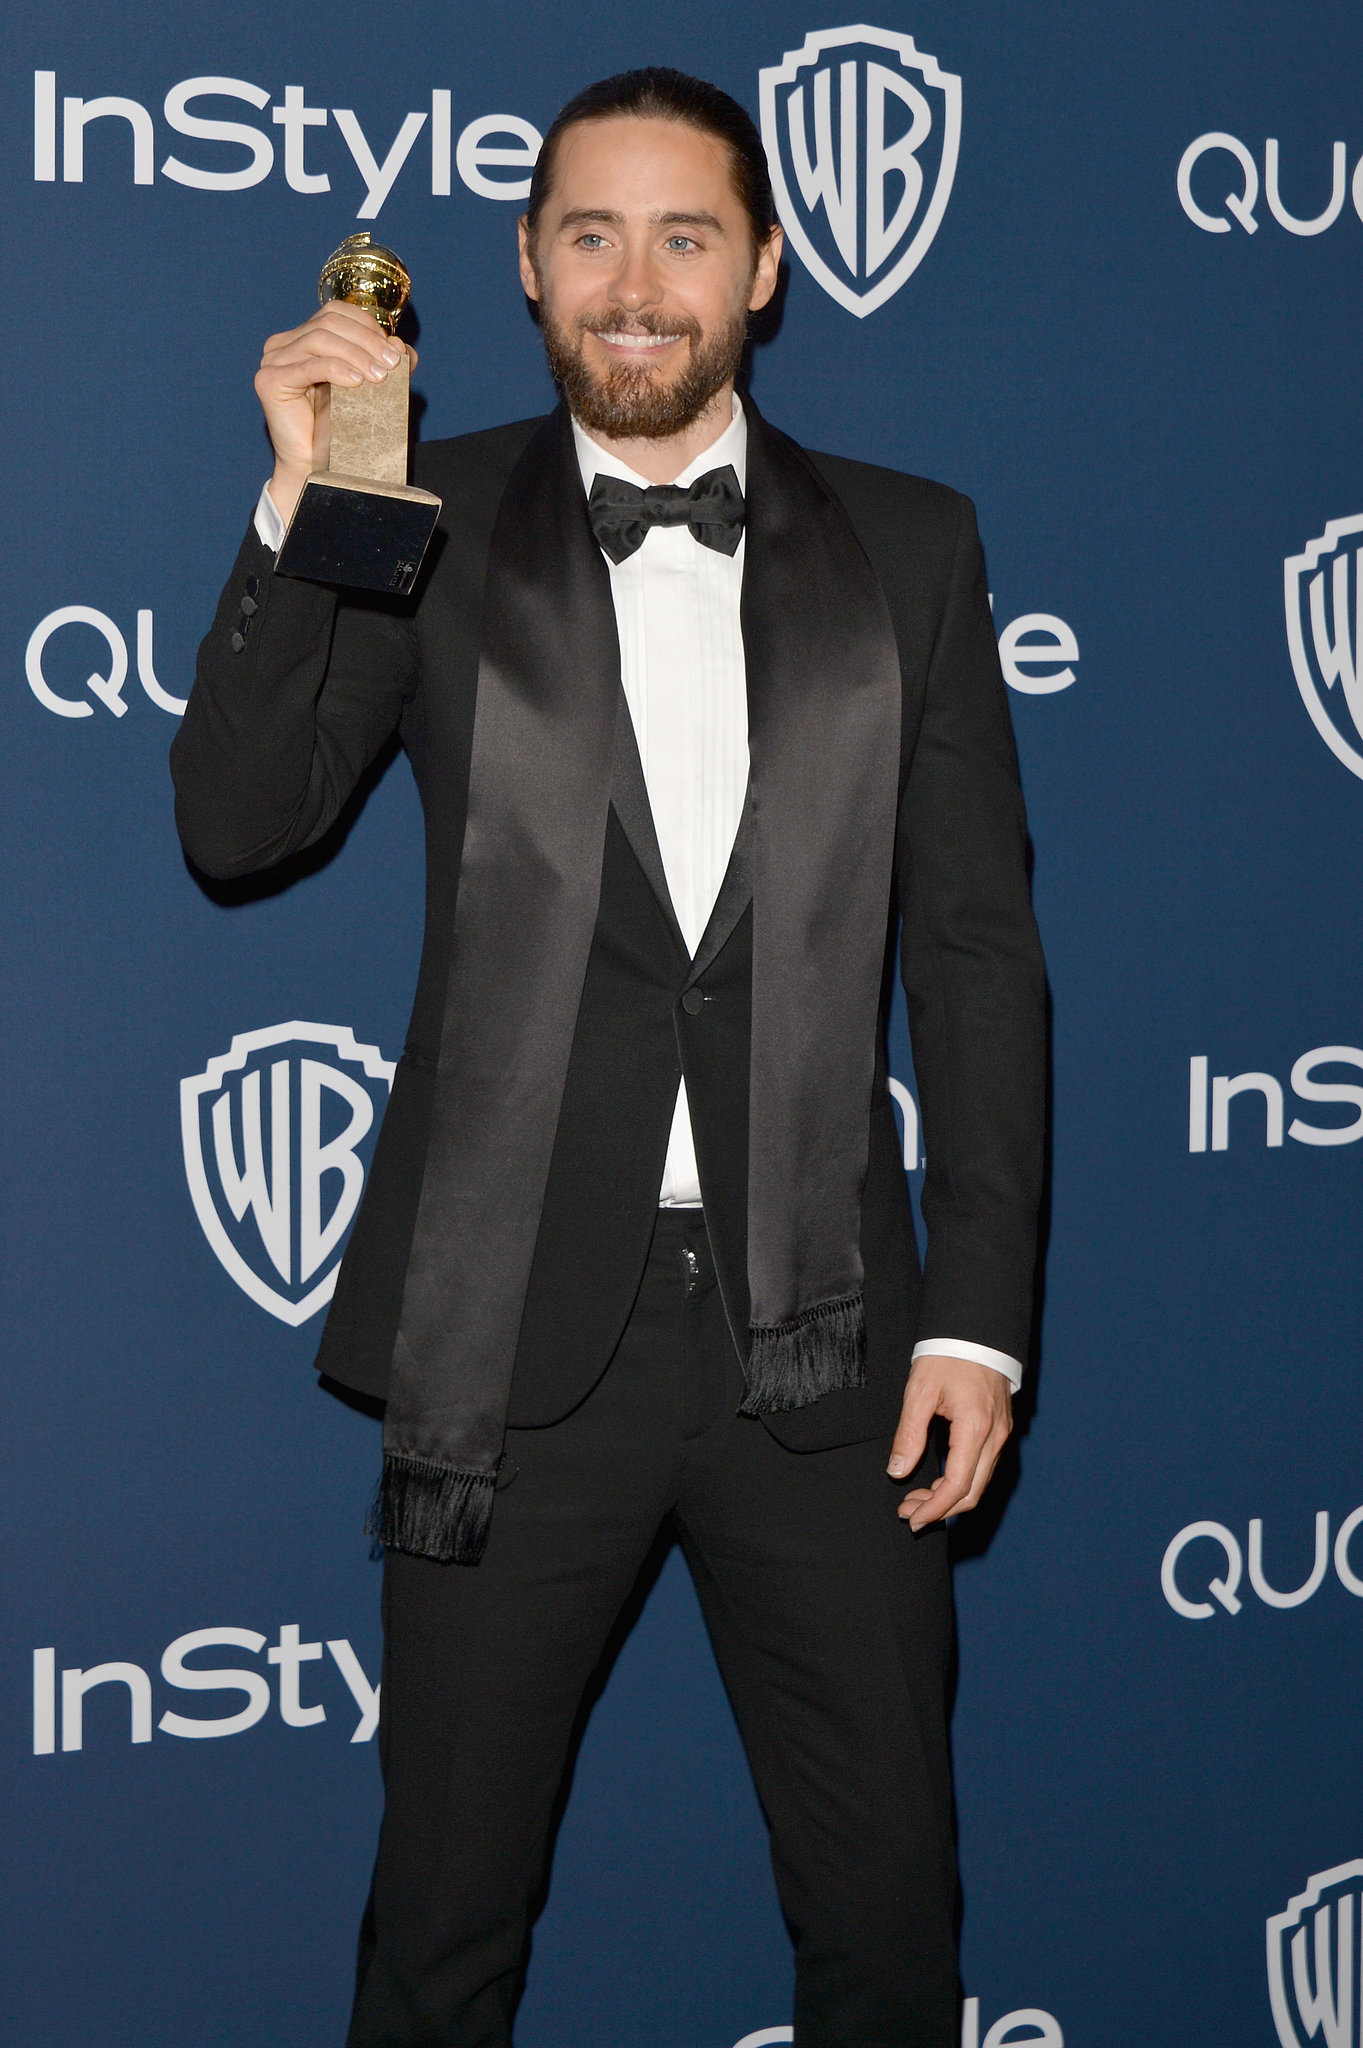 Jared Leto posed with his best supporting actor award at the InStyle bash.